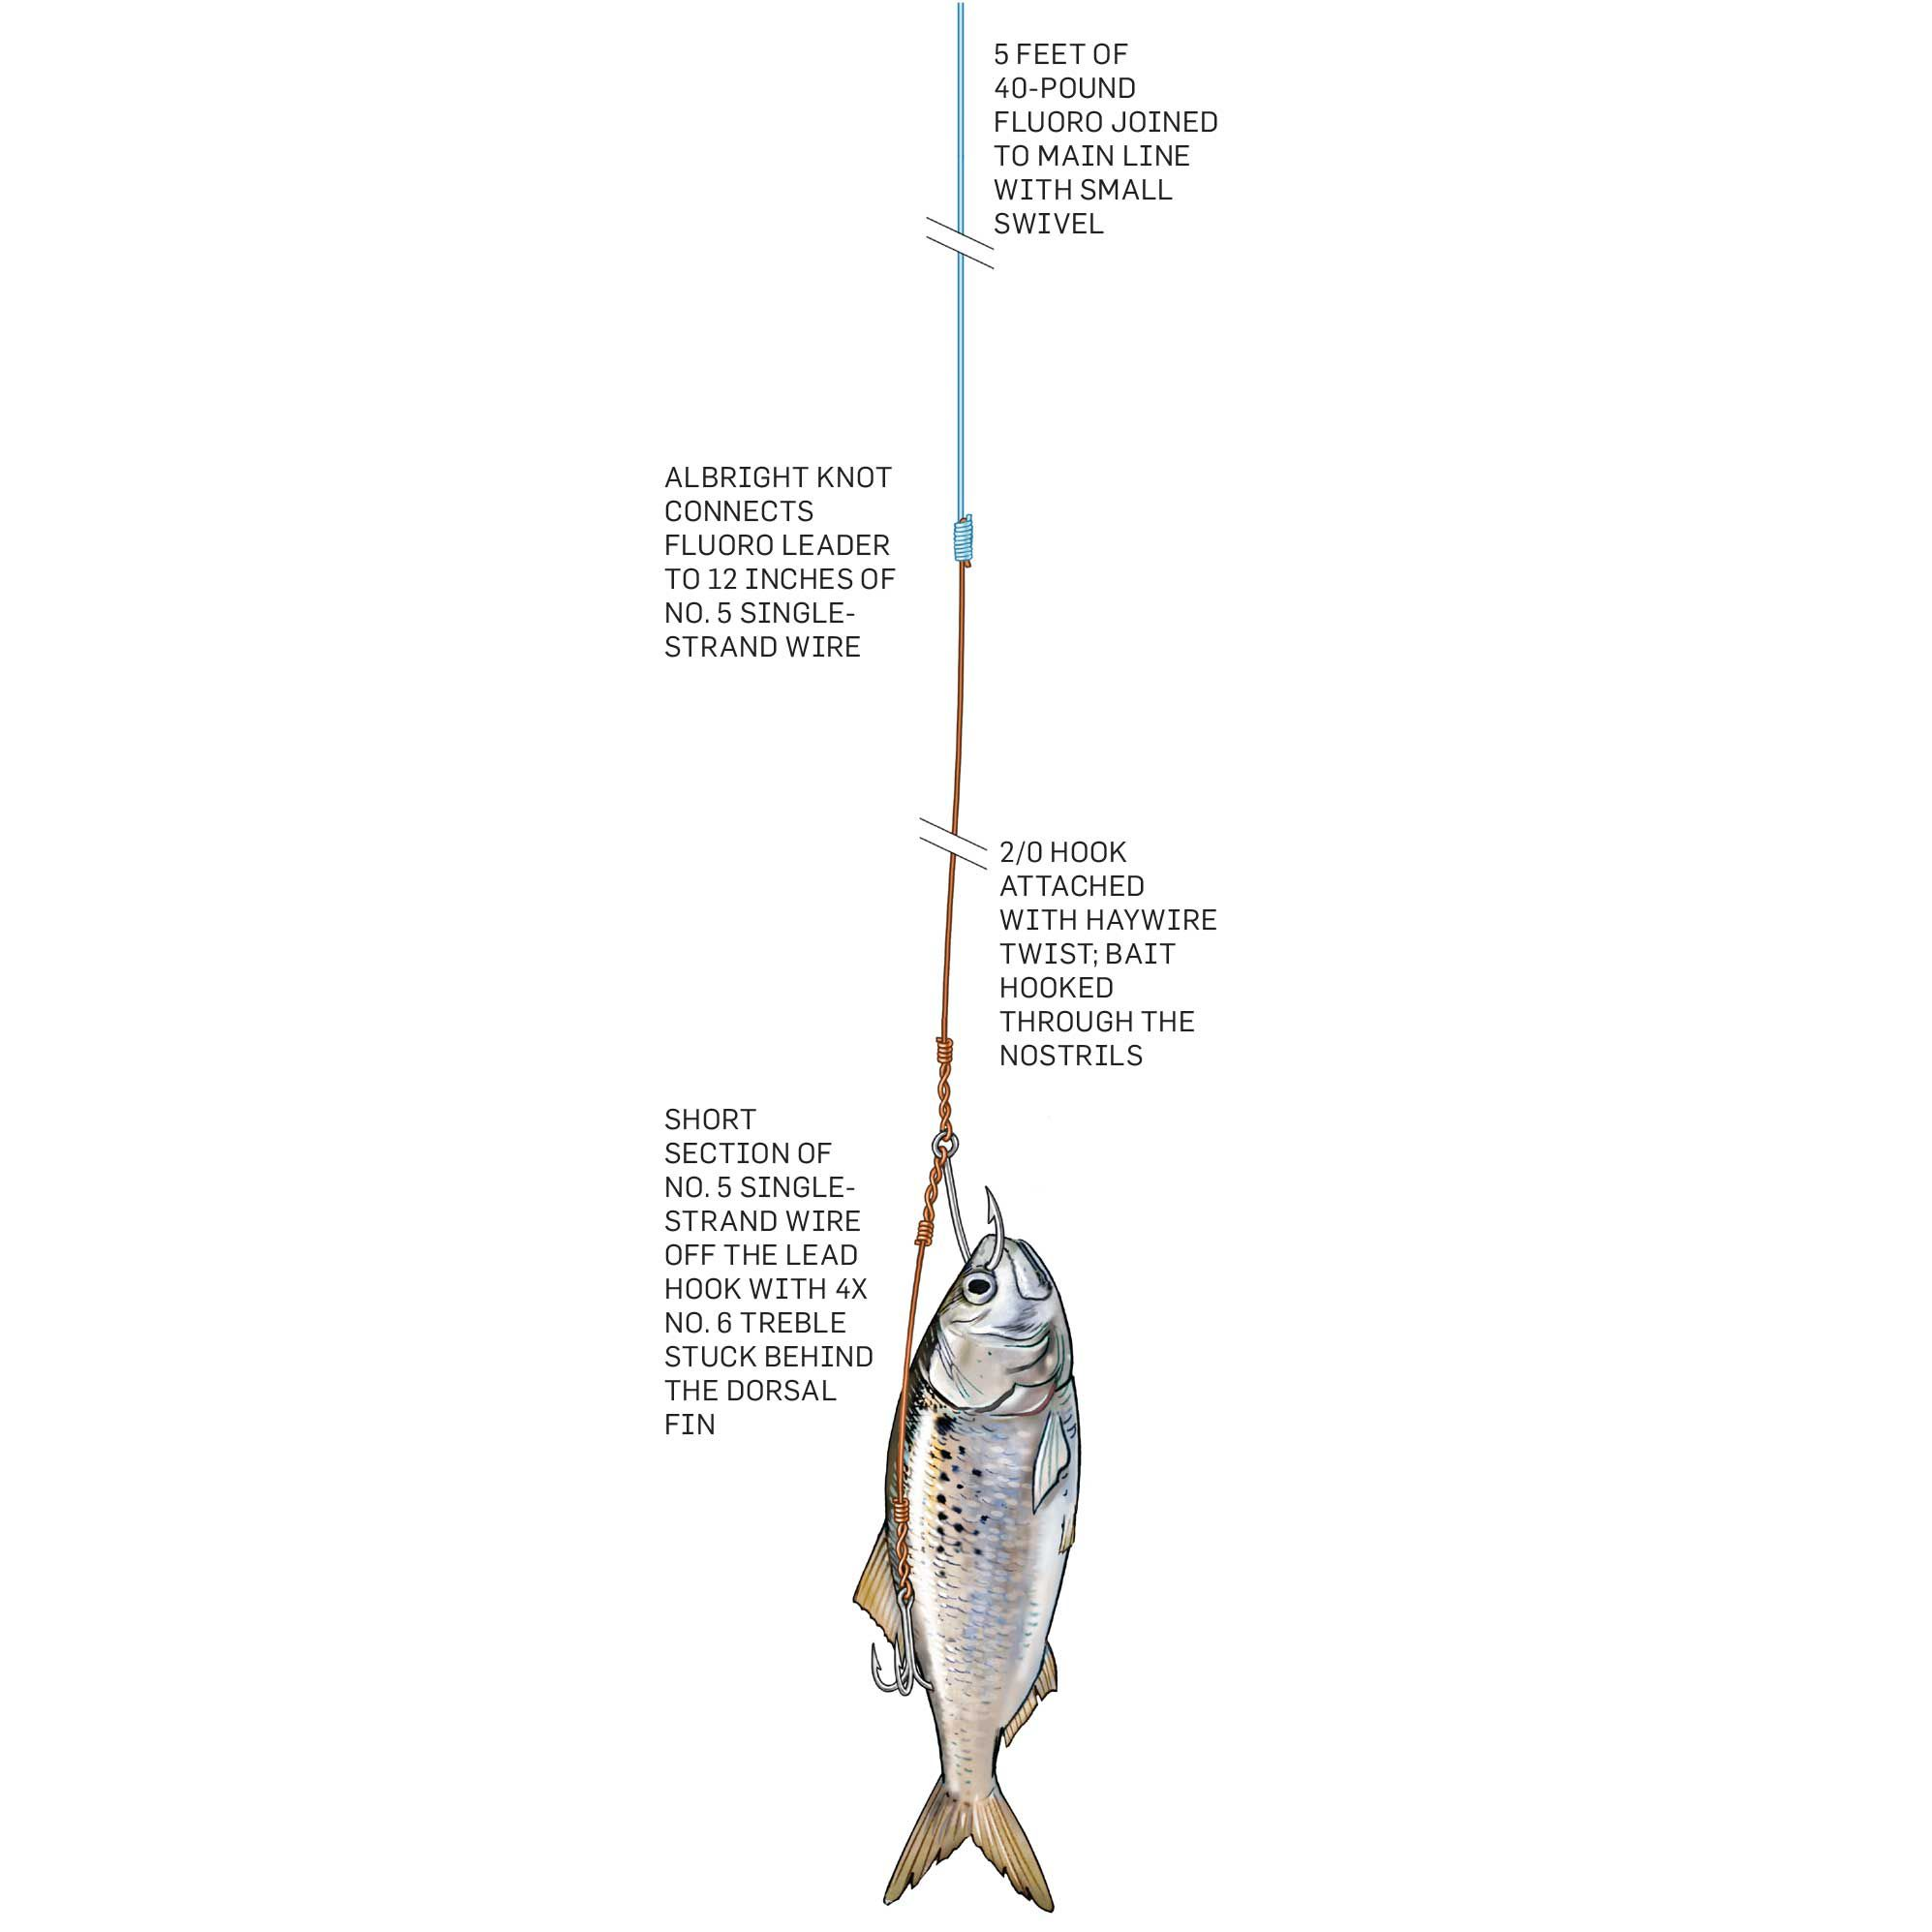 Sharp dentures on king mackerel call for wire to prevent cutoffs. The fish's equally sharp vision requires keeping wire leaders short and using No. 5 single-strand wire to minimize the potential for detection and rejection.